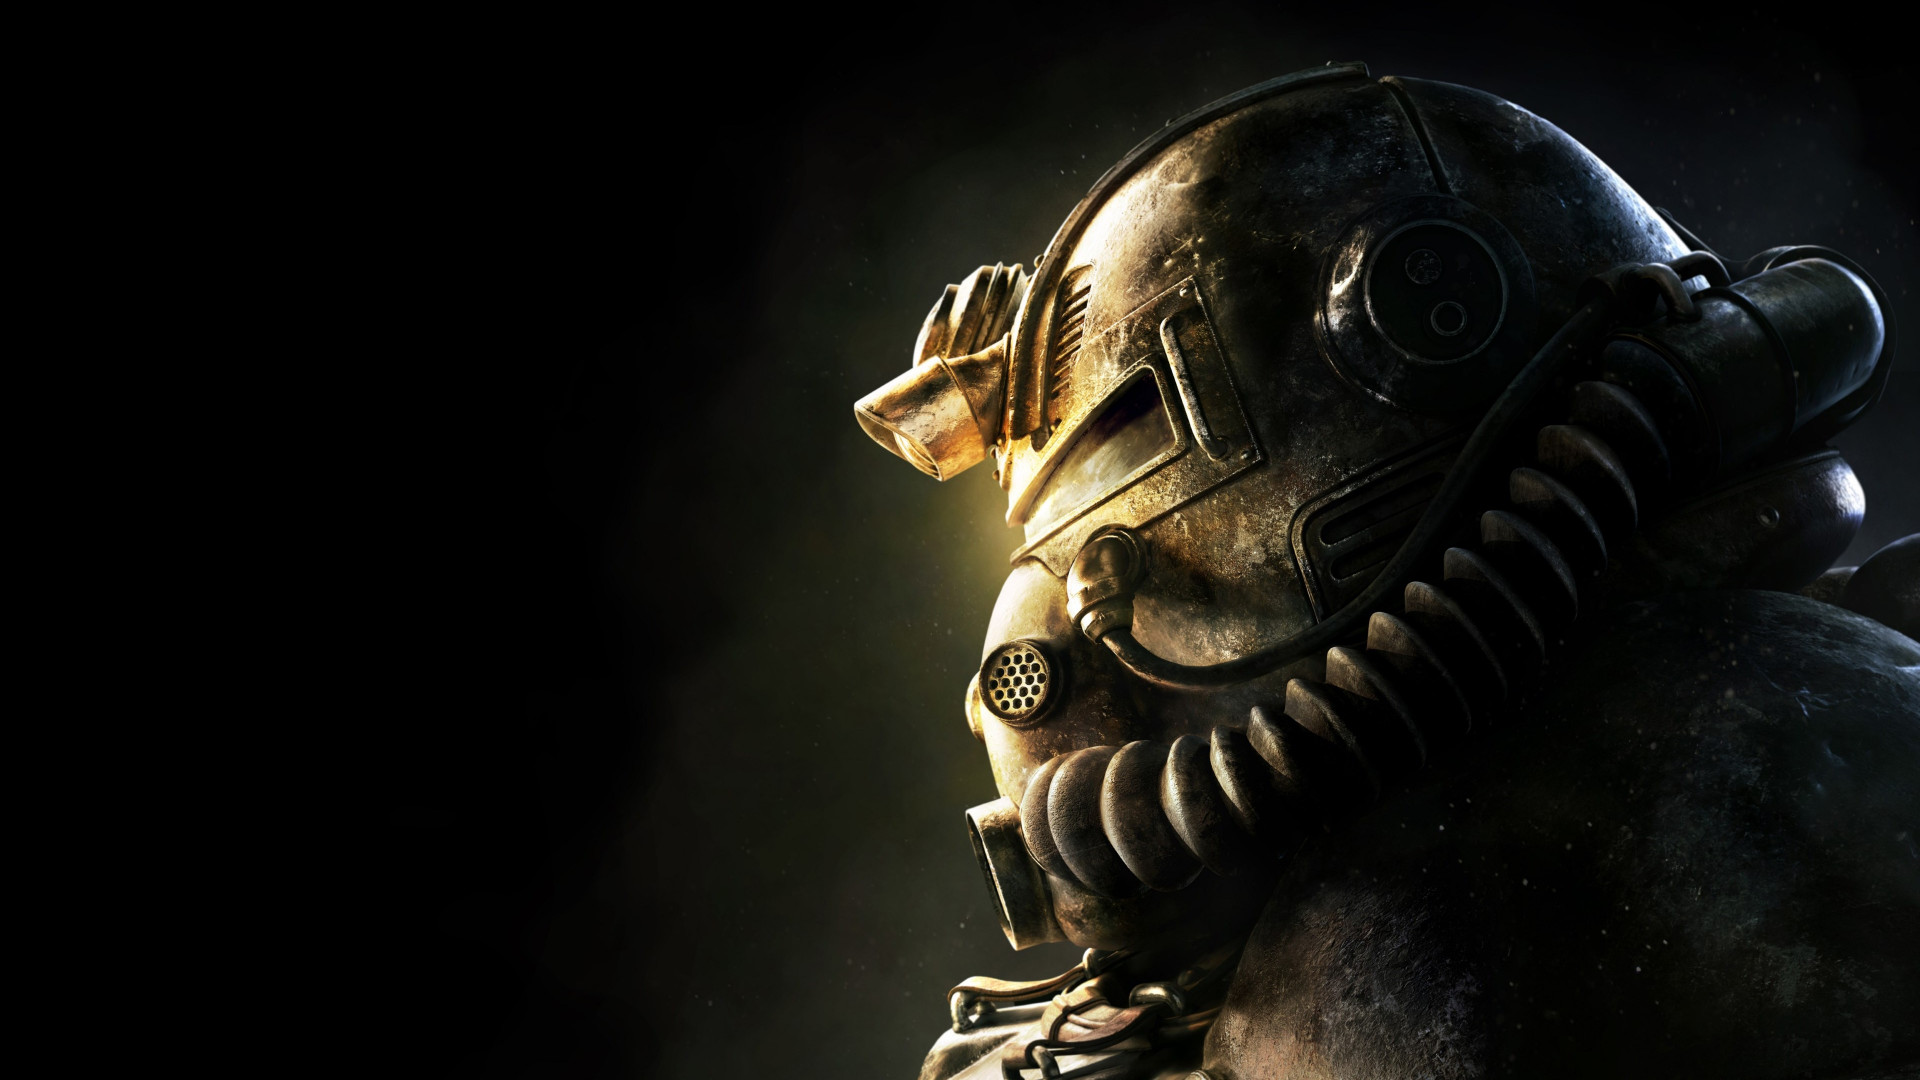 Download Wallpaper Fallout 76 1920x1080